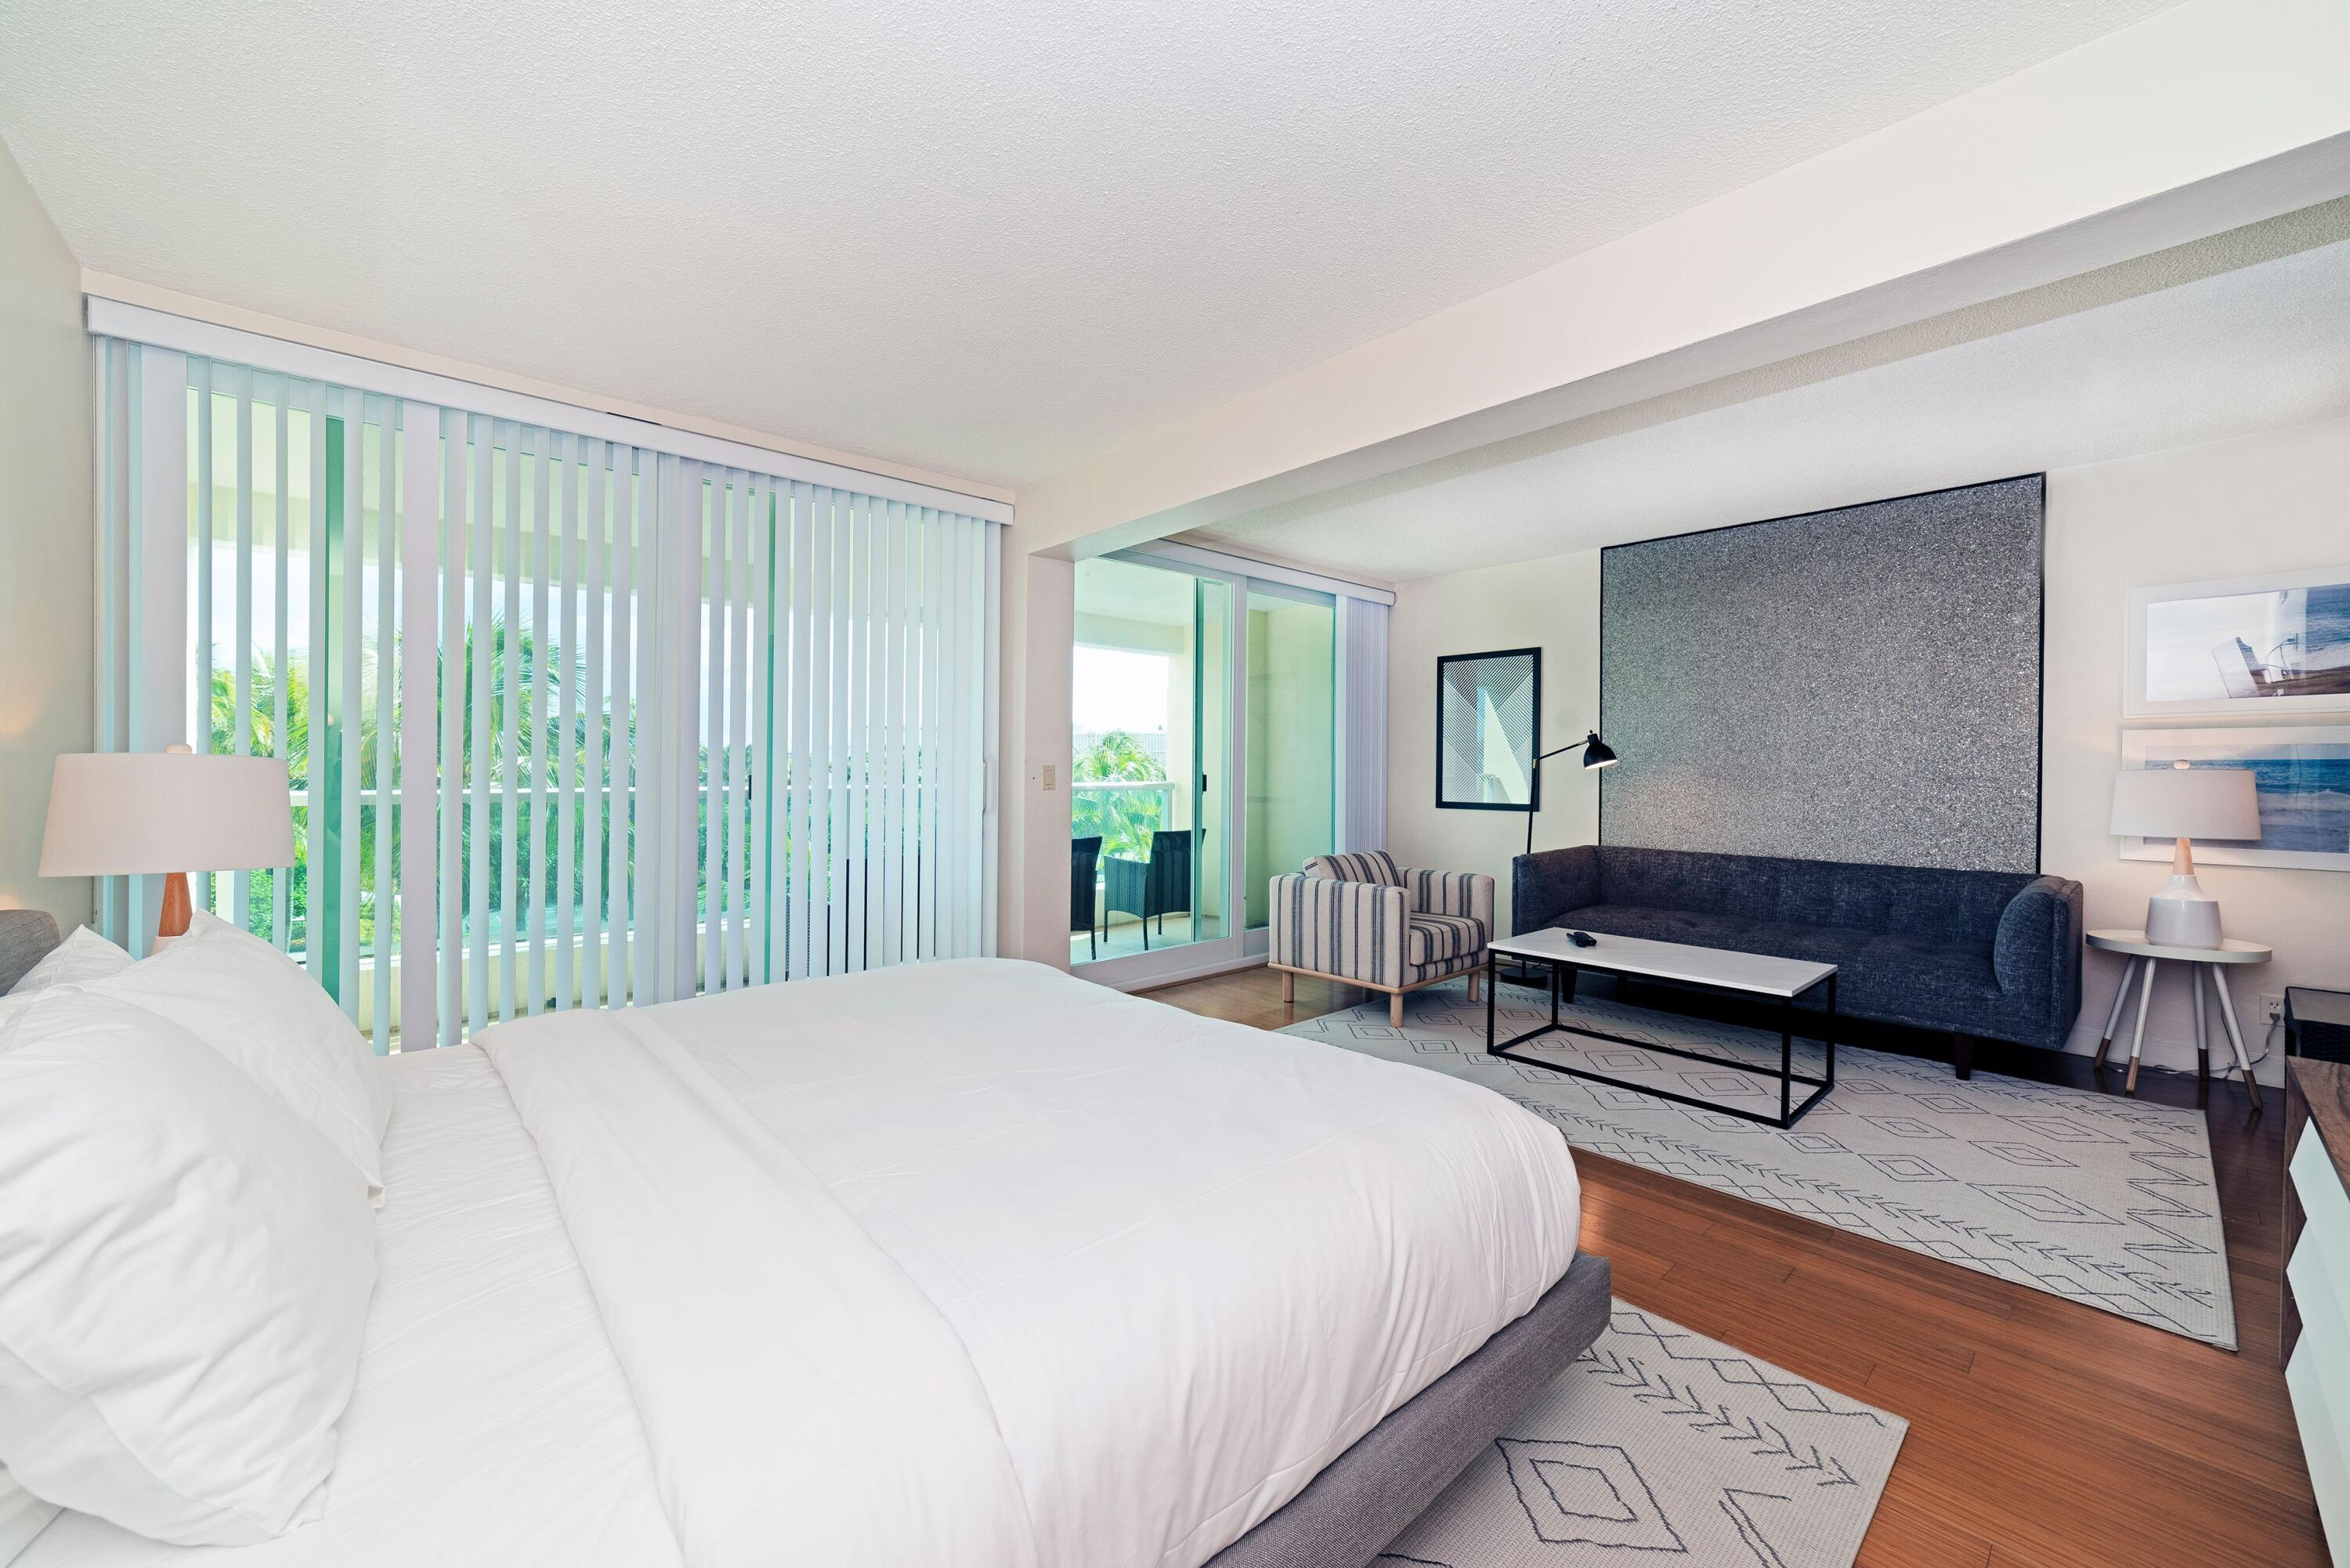 735 LIVING RM BED RM